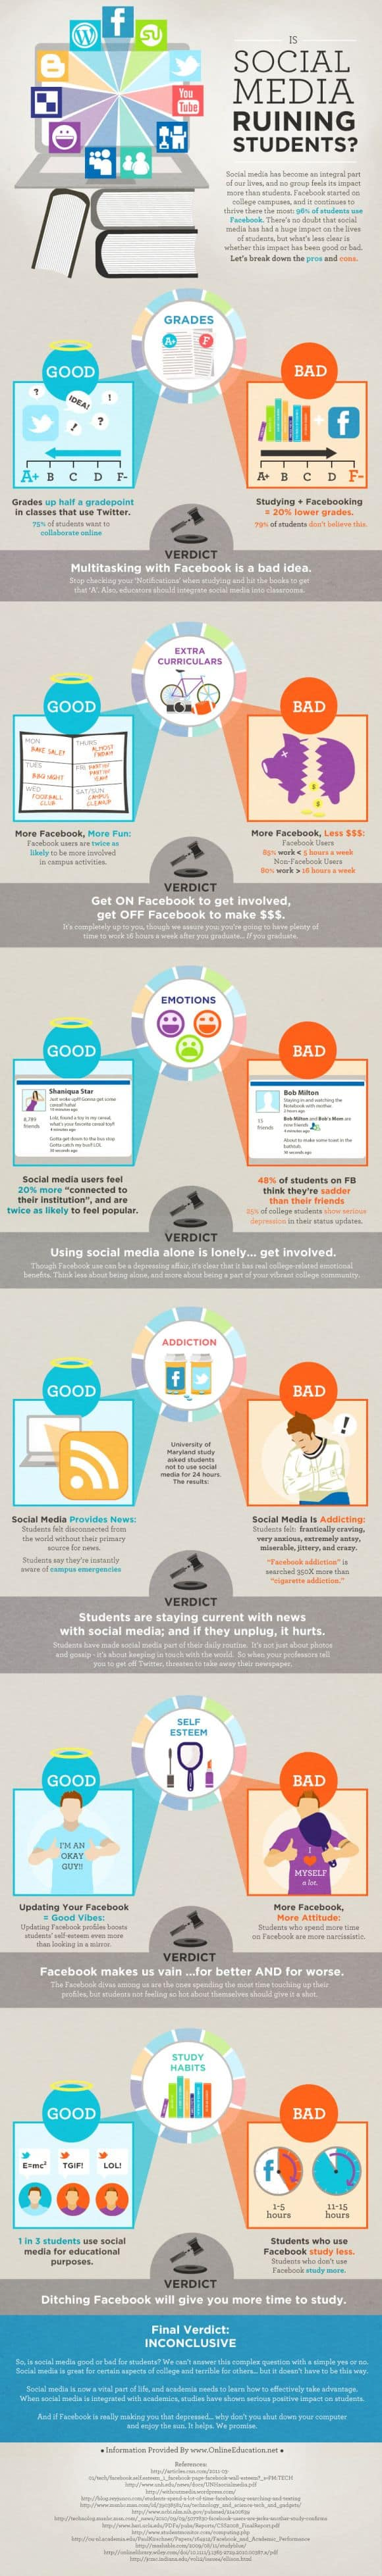 Social Media and Students small Is Social Media Ruining Students? [Infographic]